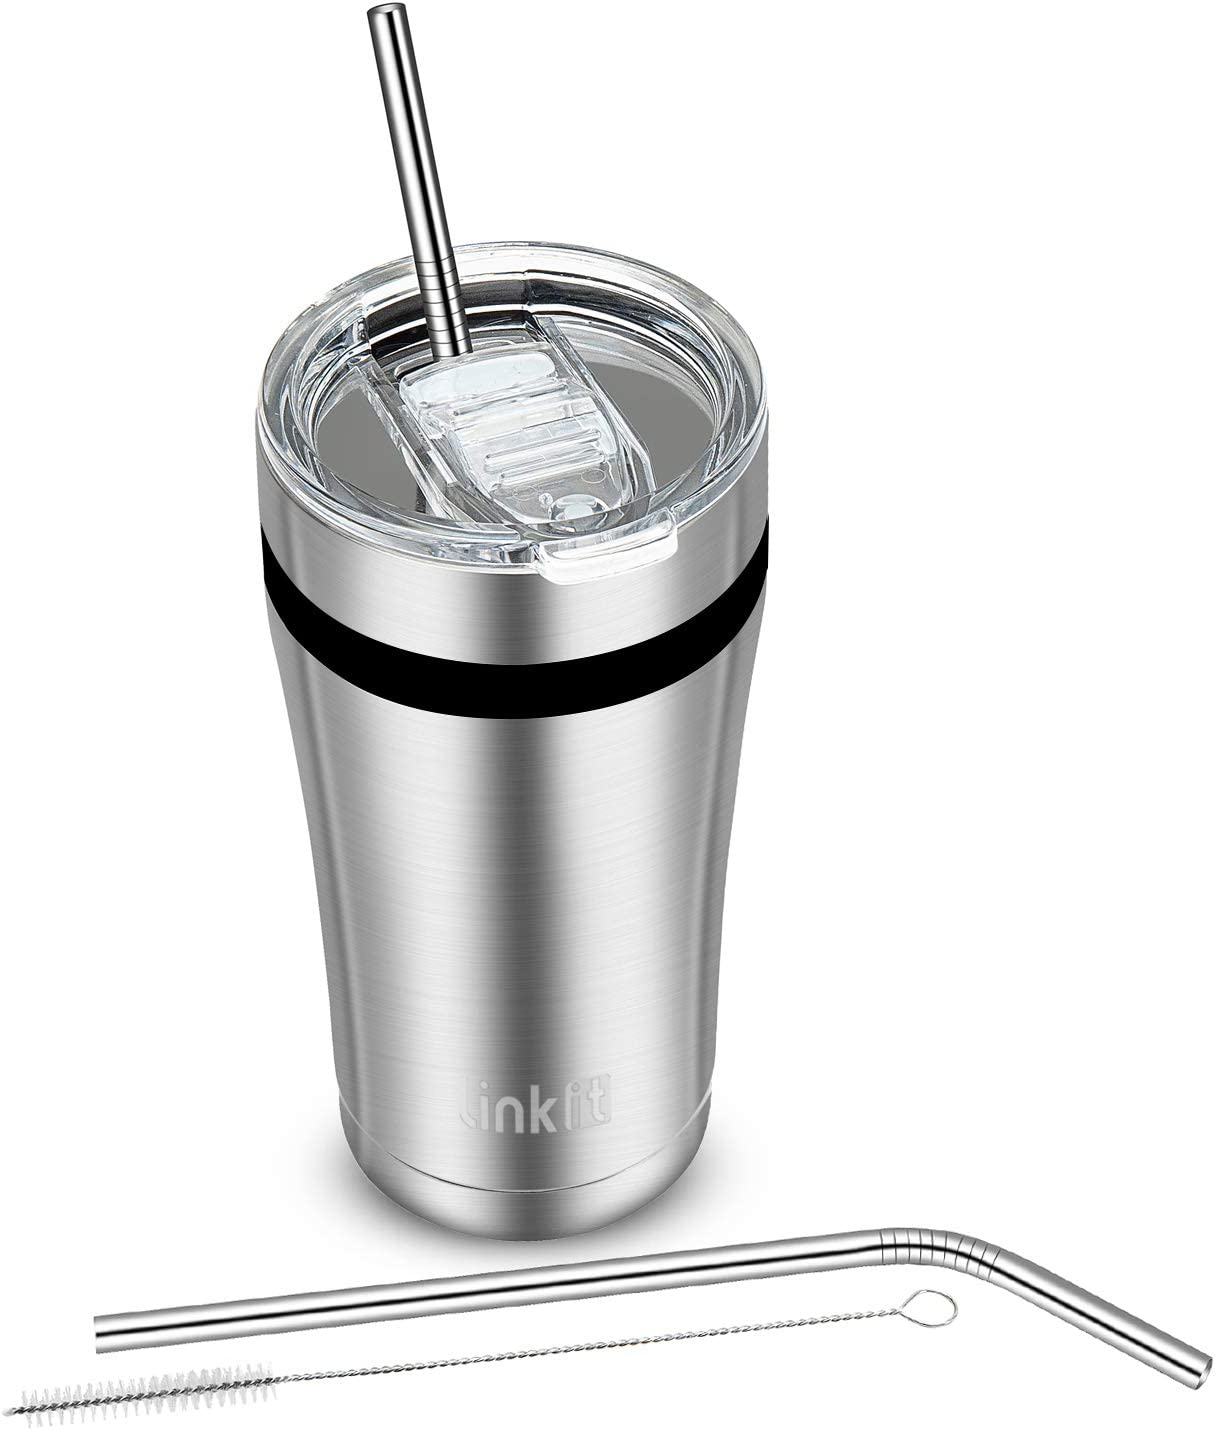 Linkit 20oz Tumbler with Slider Lid & Straws - Travel Mug Vacuum Insulated Coffee Cup - 18/8 Stainless Steel Water Bottle - Stainless Steel